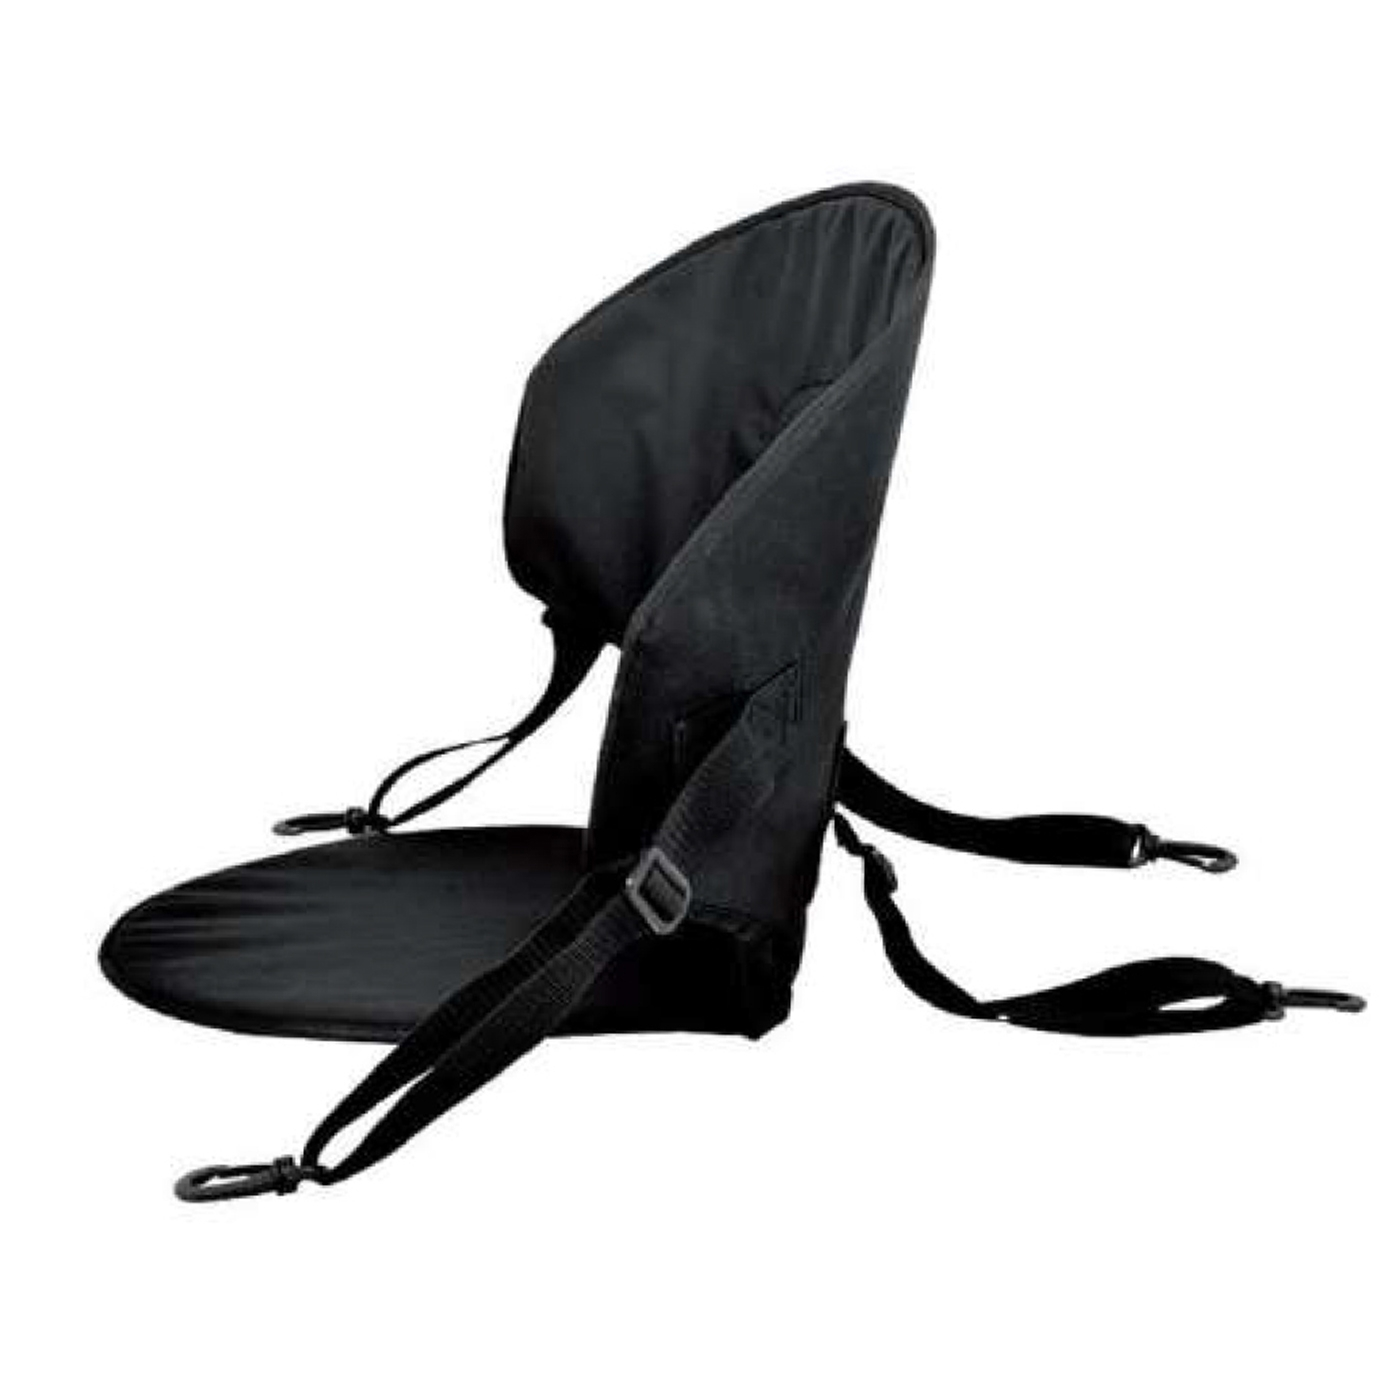 SIEGE KAYAK BLACK